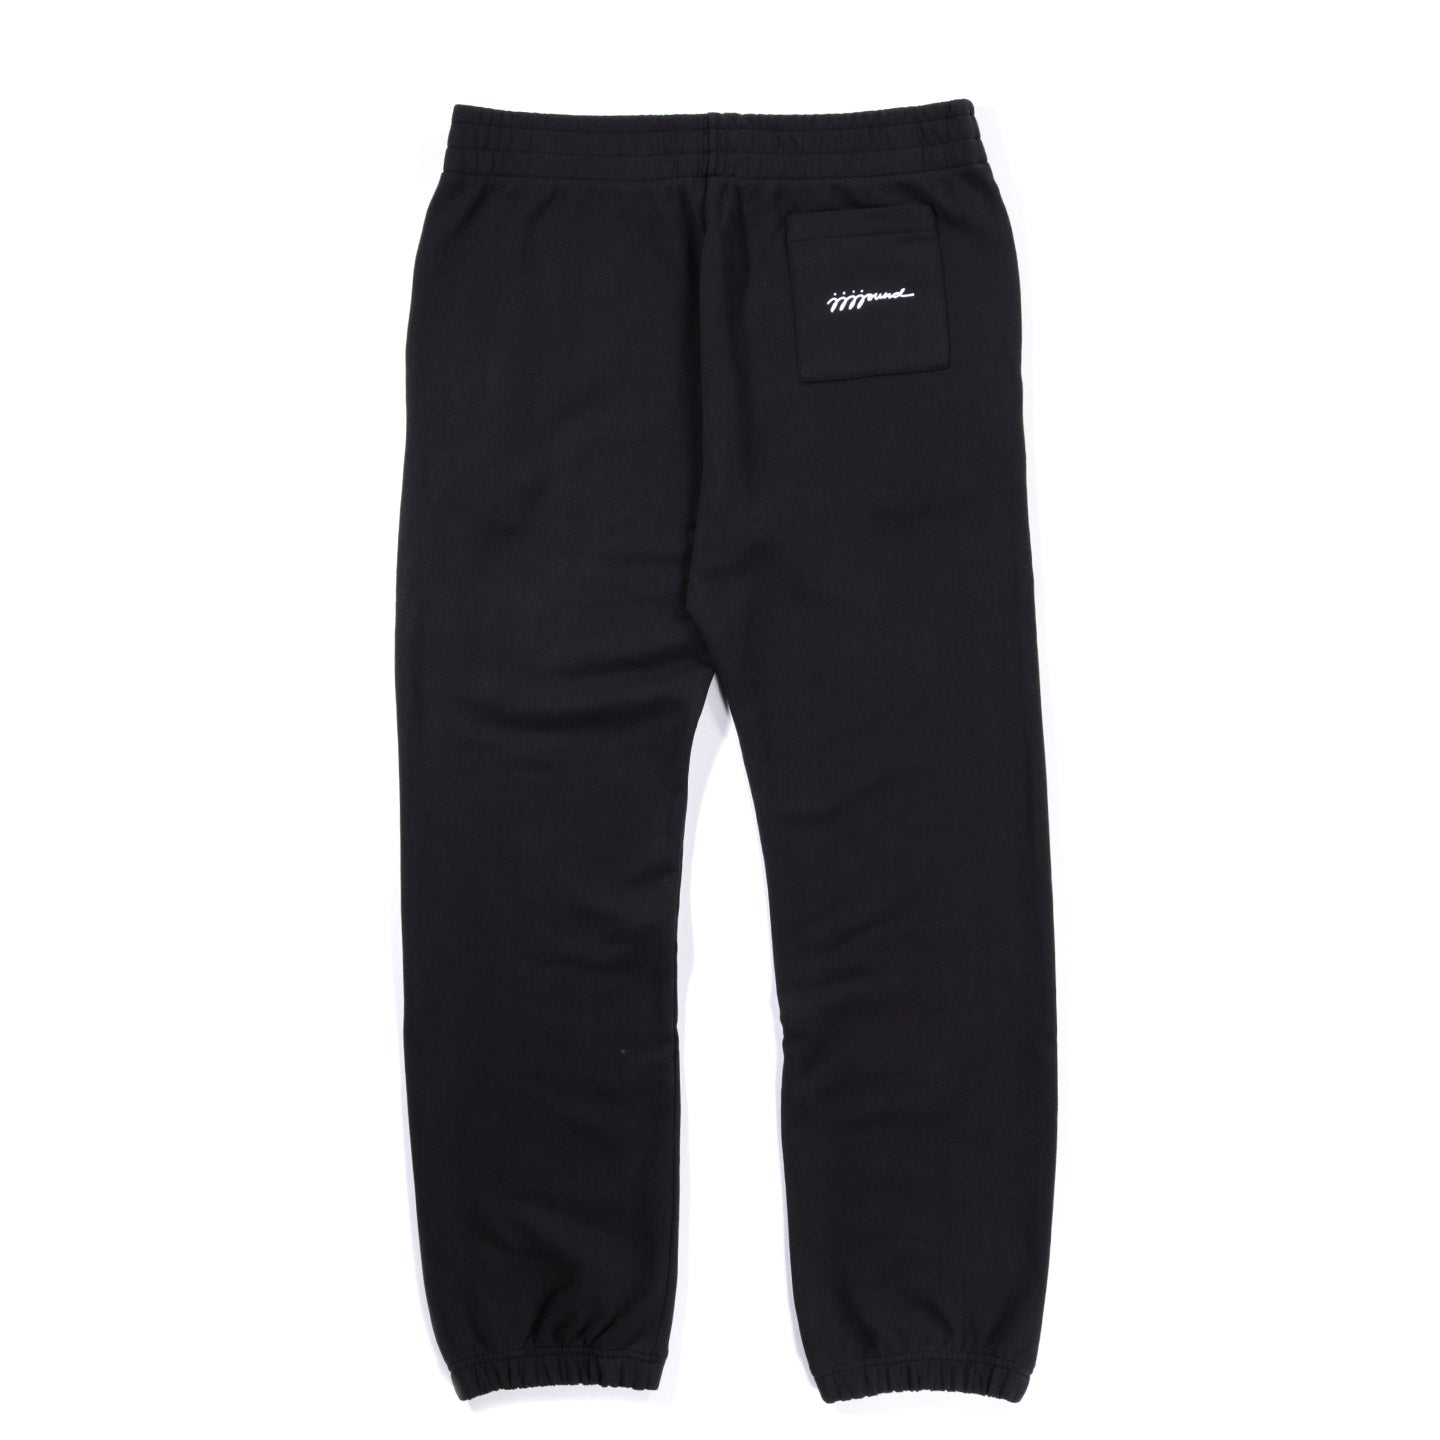 A.P.C. JJJJOUND JUSTIN SWEATPANT BLACK